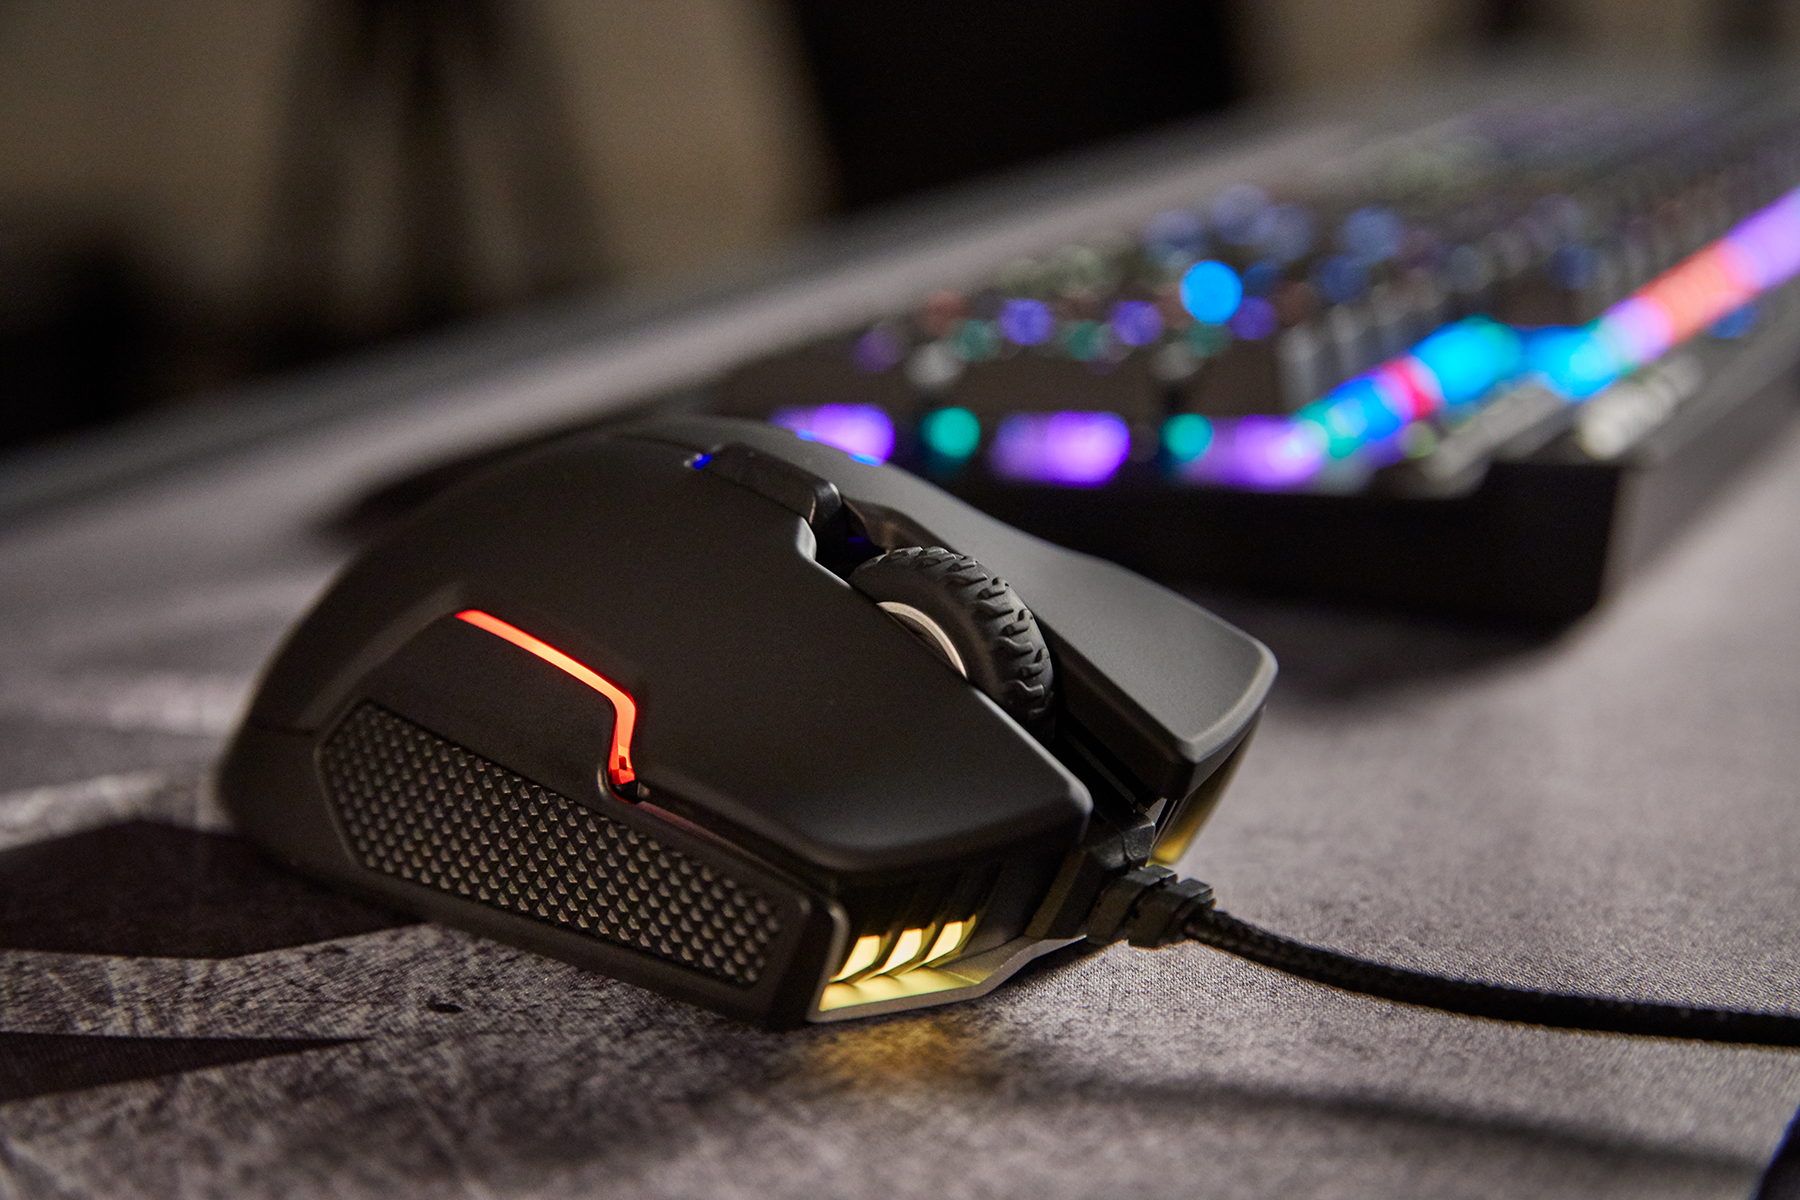 Corsair Launches Glaive RGB Mouse: 16,000 DPI, Interchangeable Grips